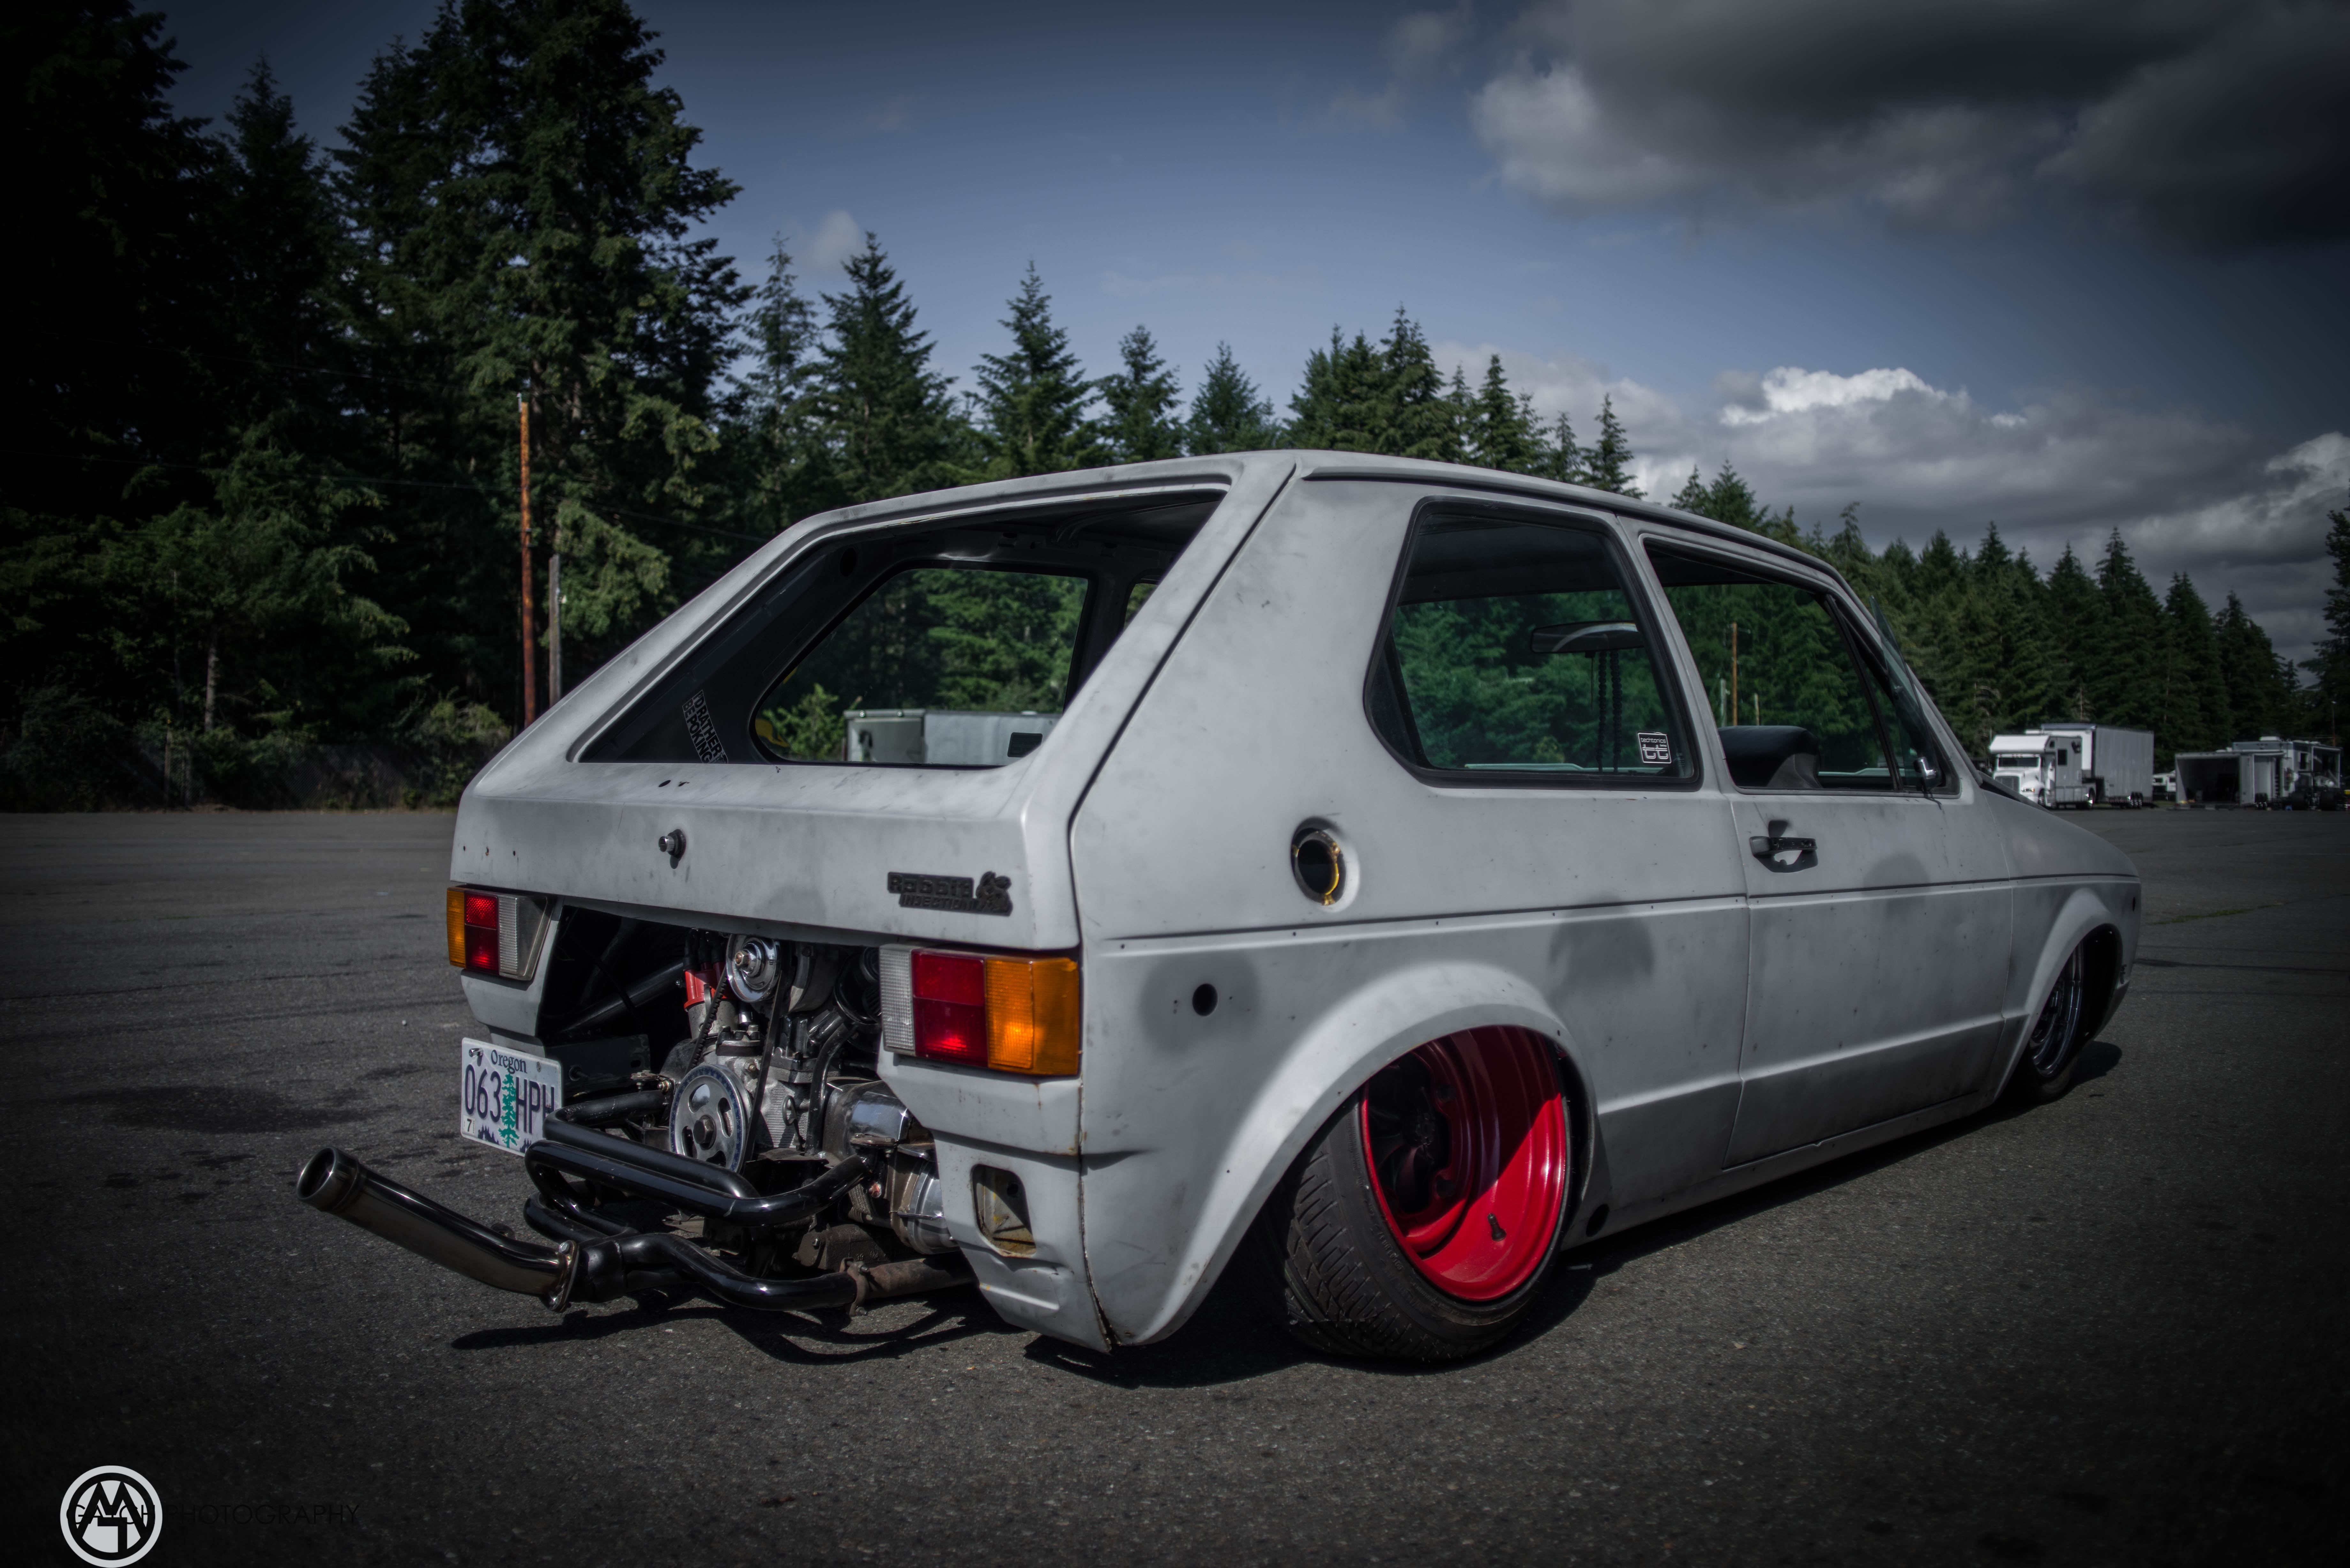 VW Rabbit (Golf) Mk I Sitting on Custom Beetle Frame Is a Rear-Engined Fetish - autoevolution